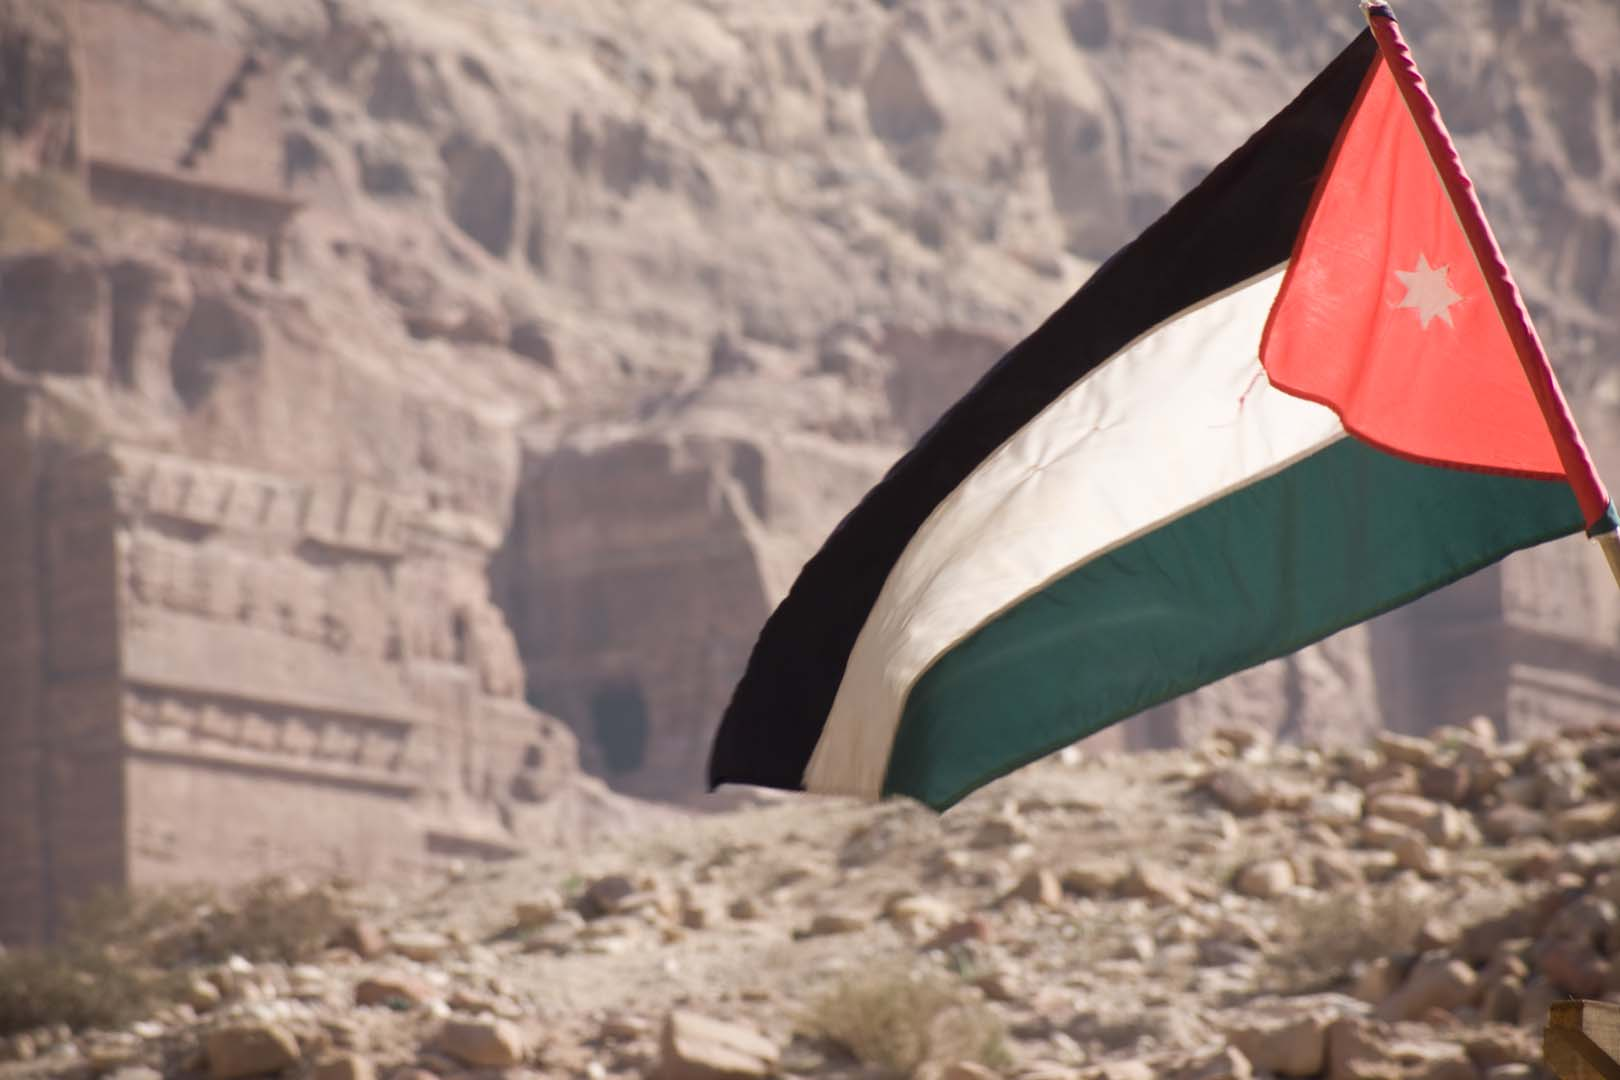 Jordan starts move towards generating 10% of electricity from renewables by 2020. Source: Flickr/Patrick Neckman.